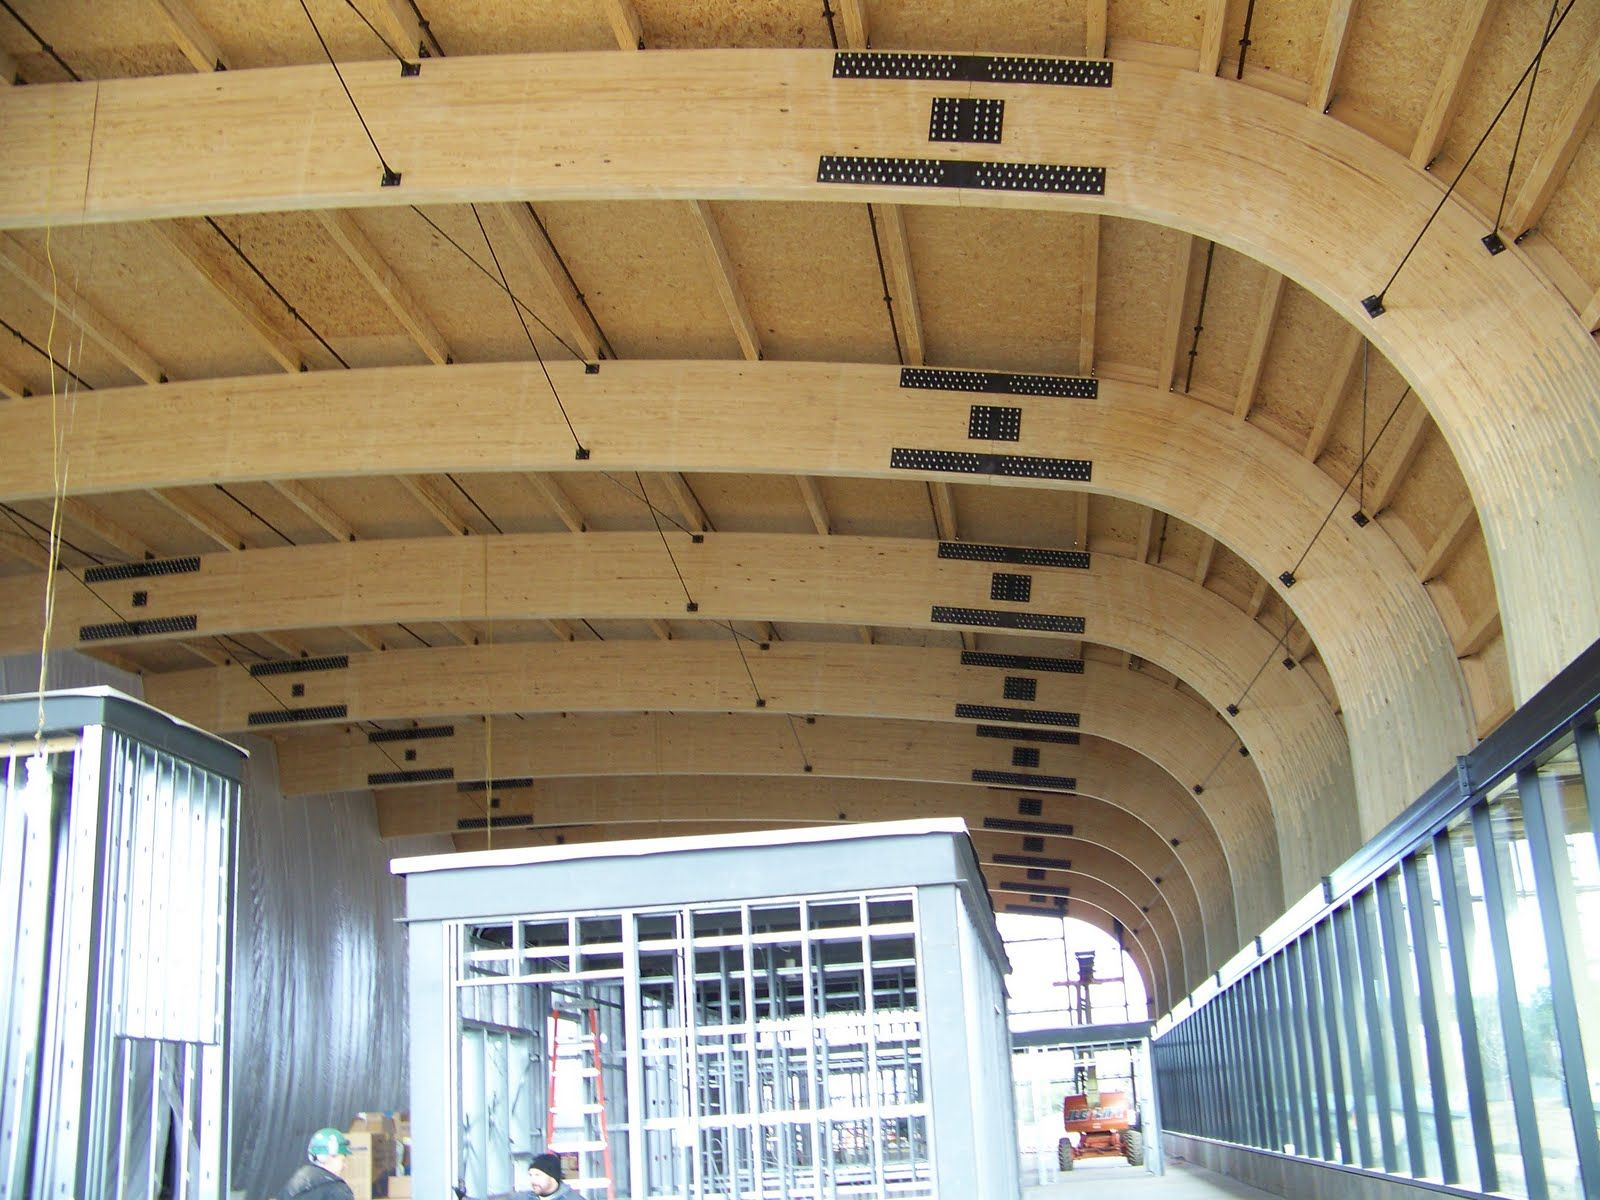 architecture glulam construction architecture glu lam architecture glulam construction unalam fabricated those huge archs for the building that is leed platinum